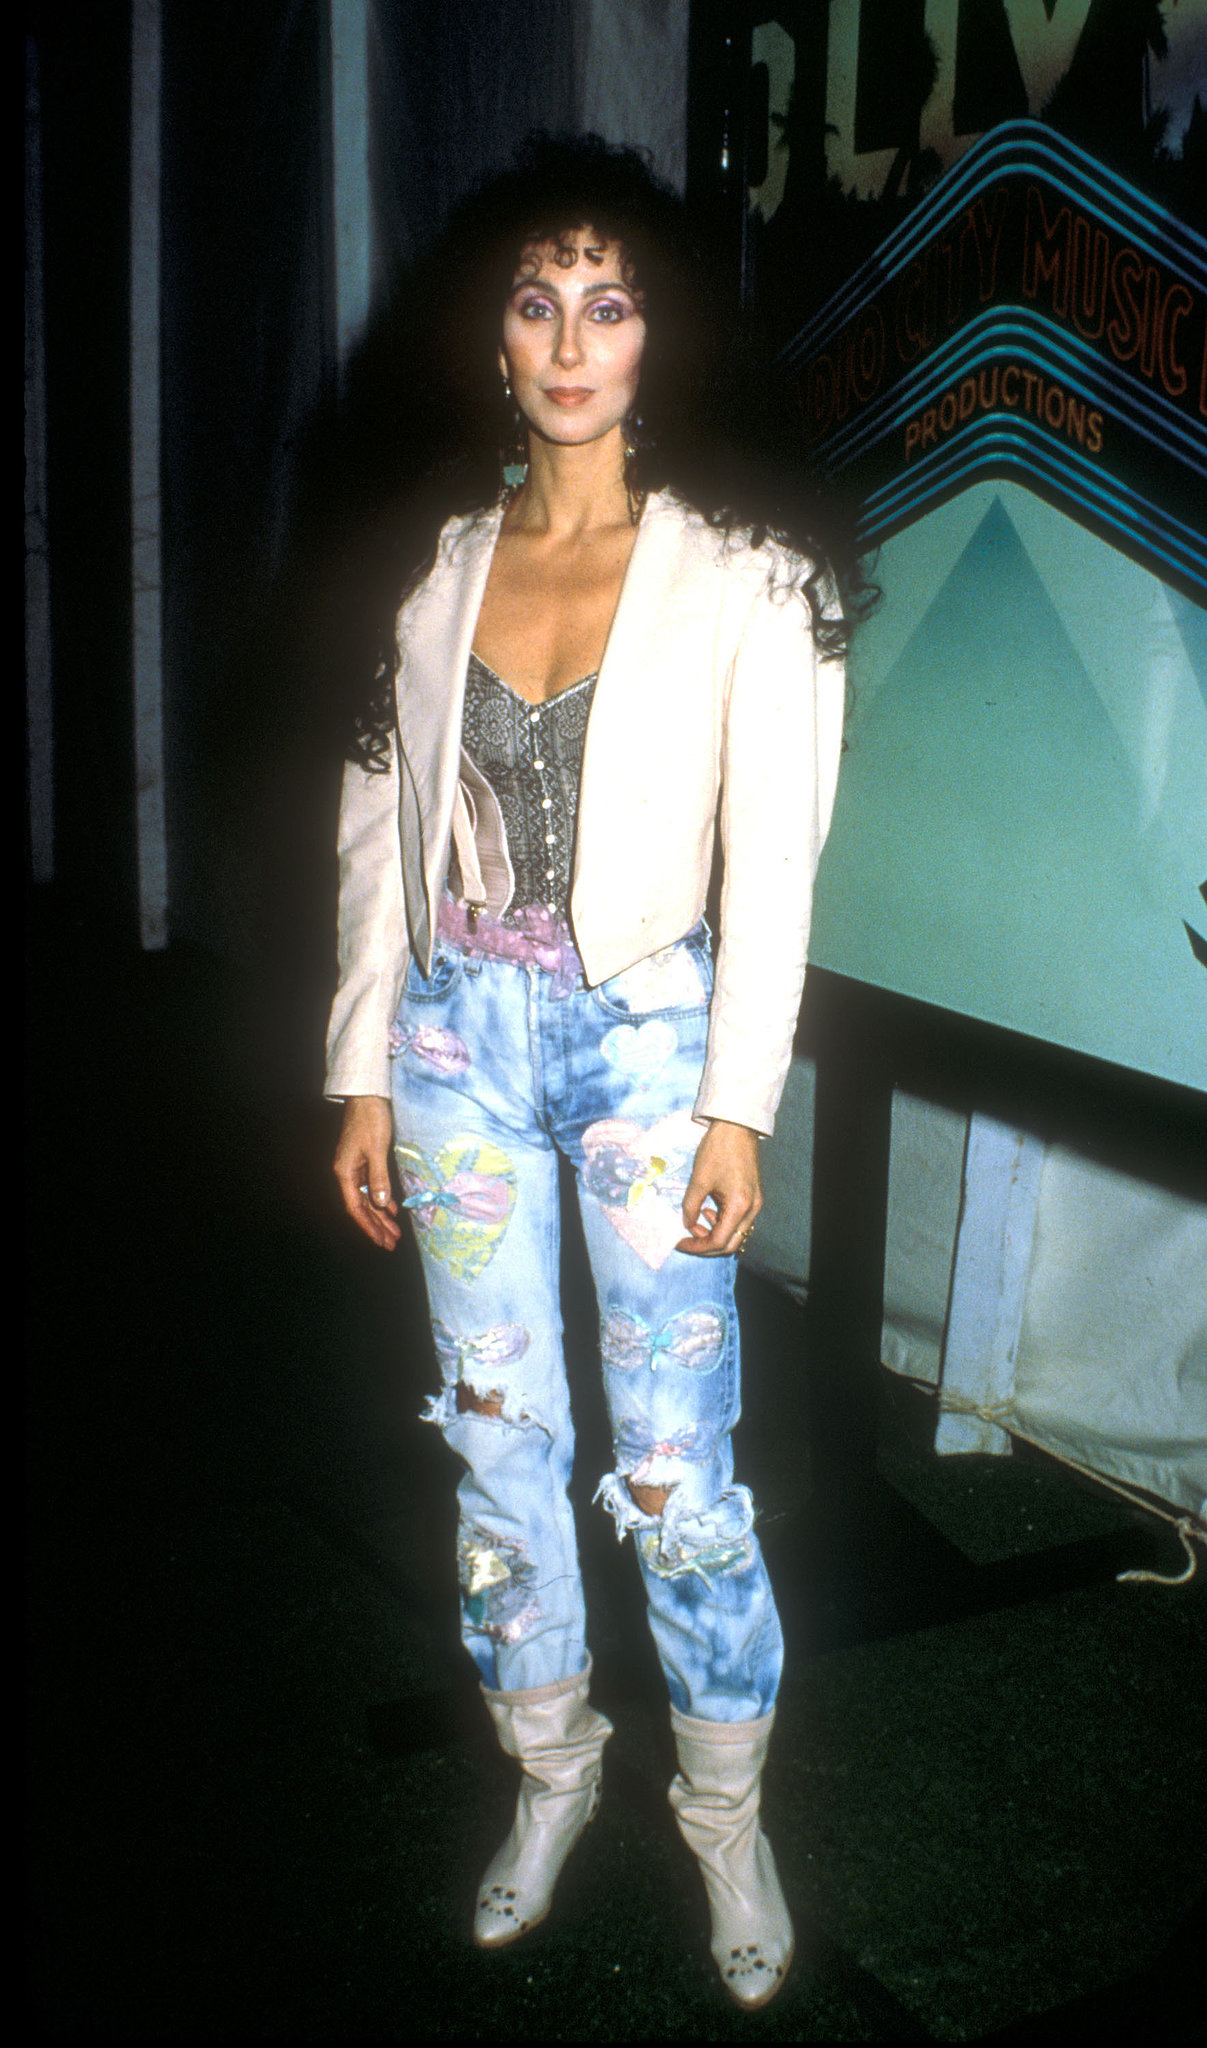 Cher was snapped backstage in ripped jeans and a whi